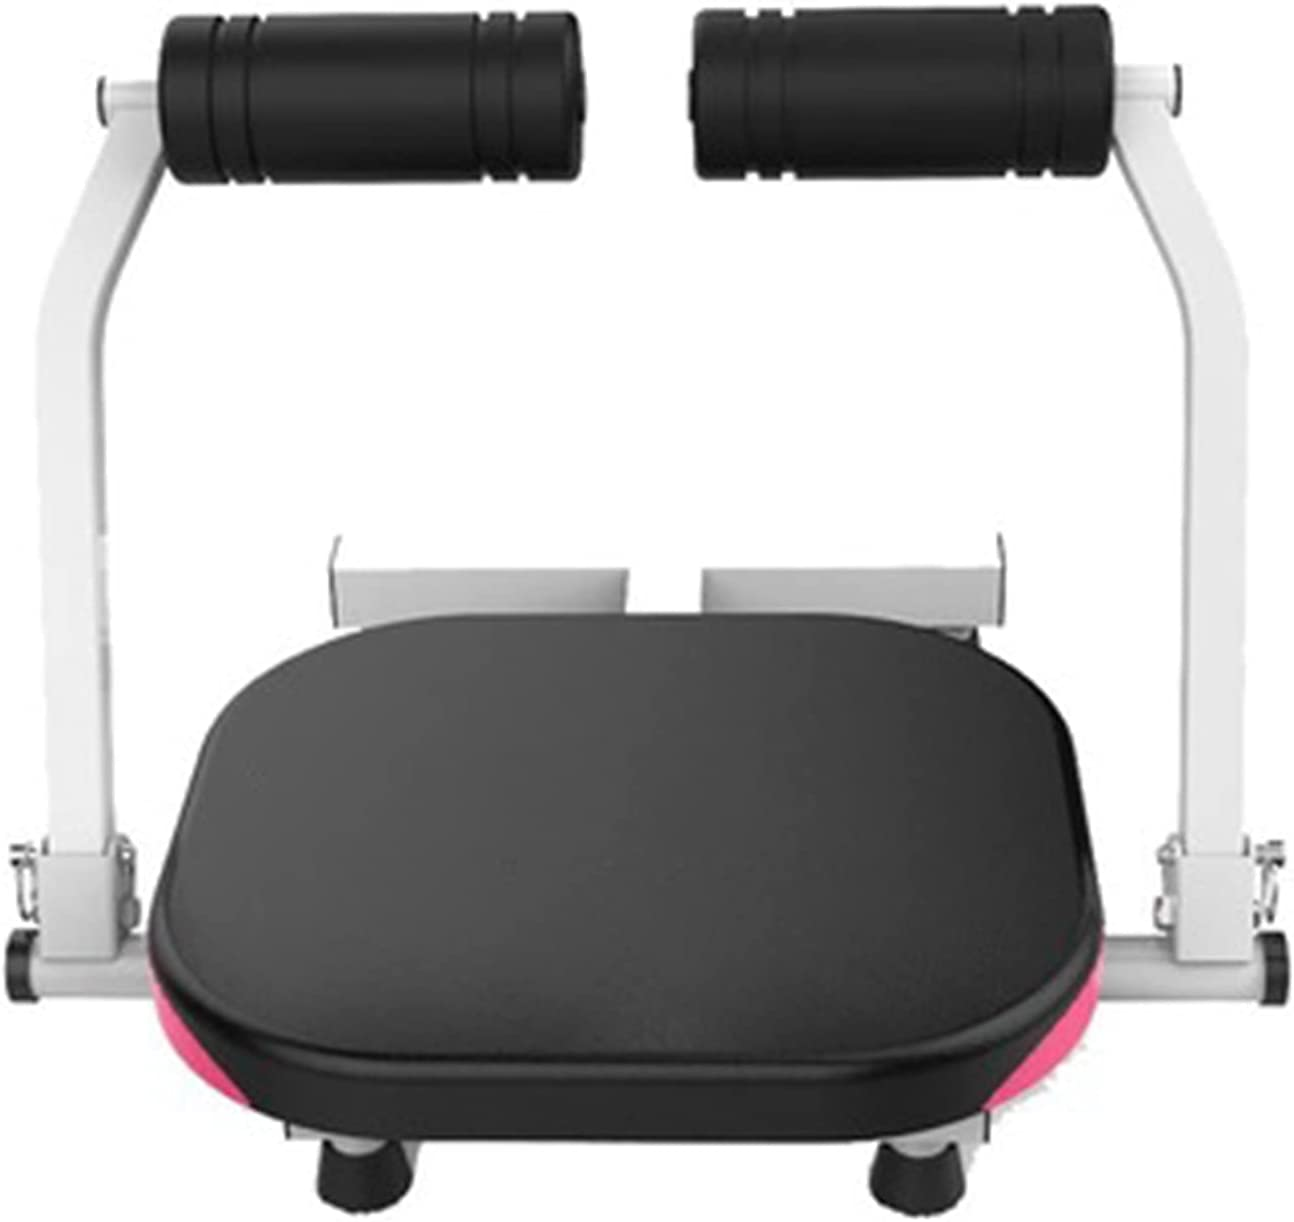 QERNTPEY Sit Up Bar Ab Machine Exercise El Paso Mall Workout Now on sale Abdominal Eq Abs